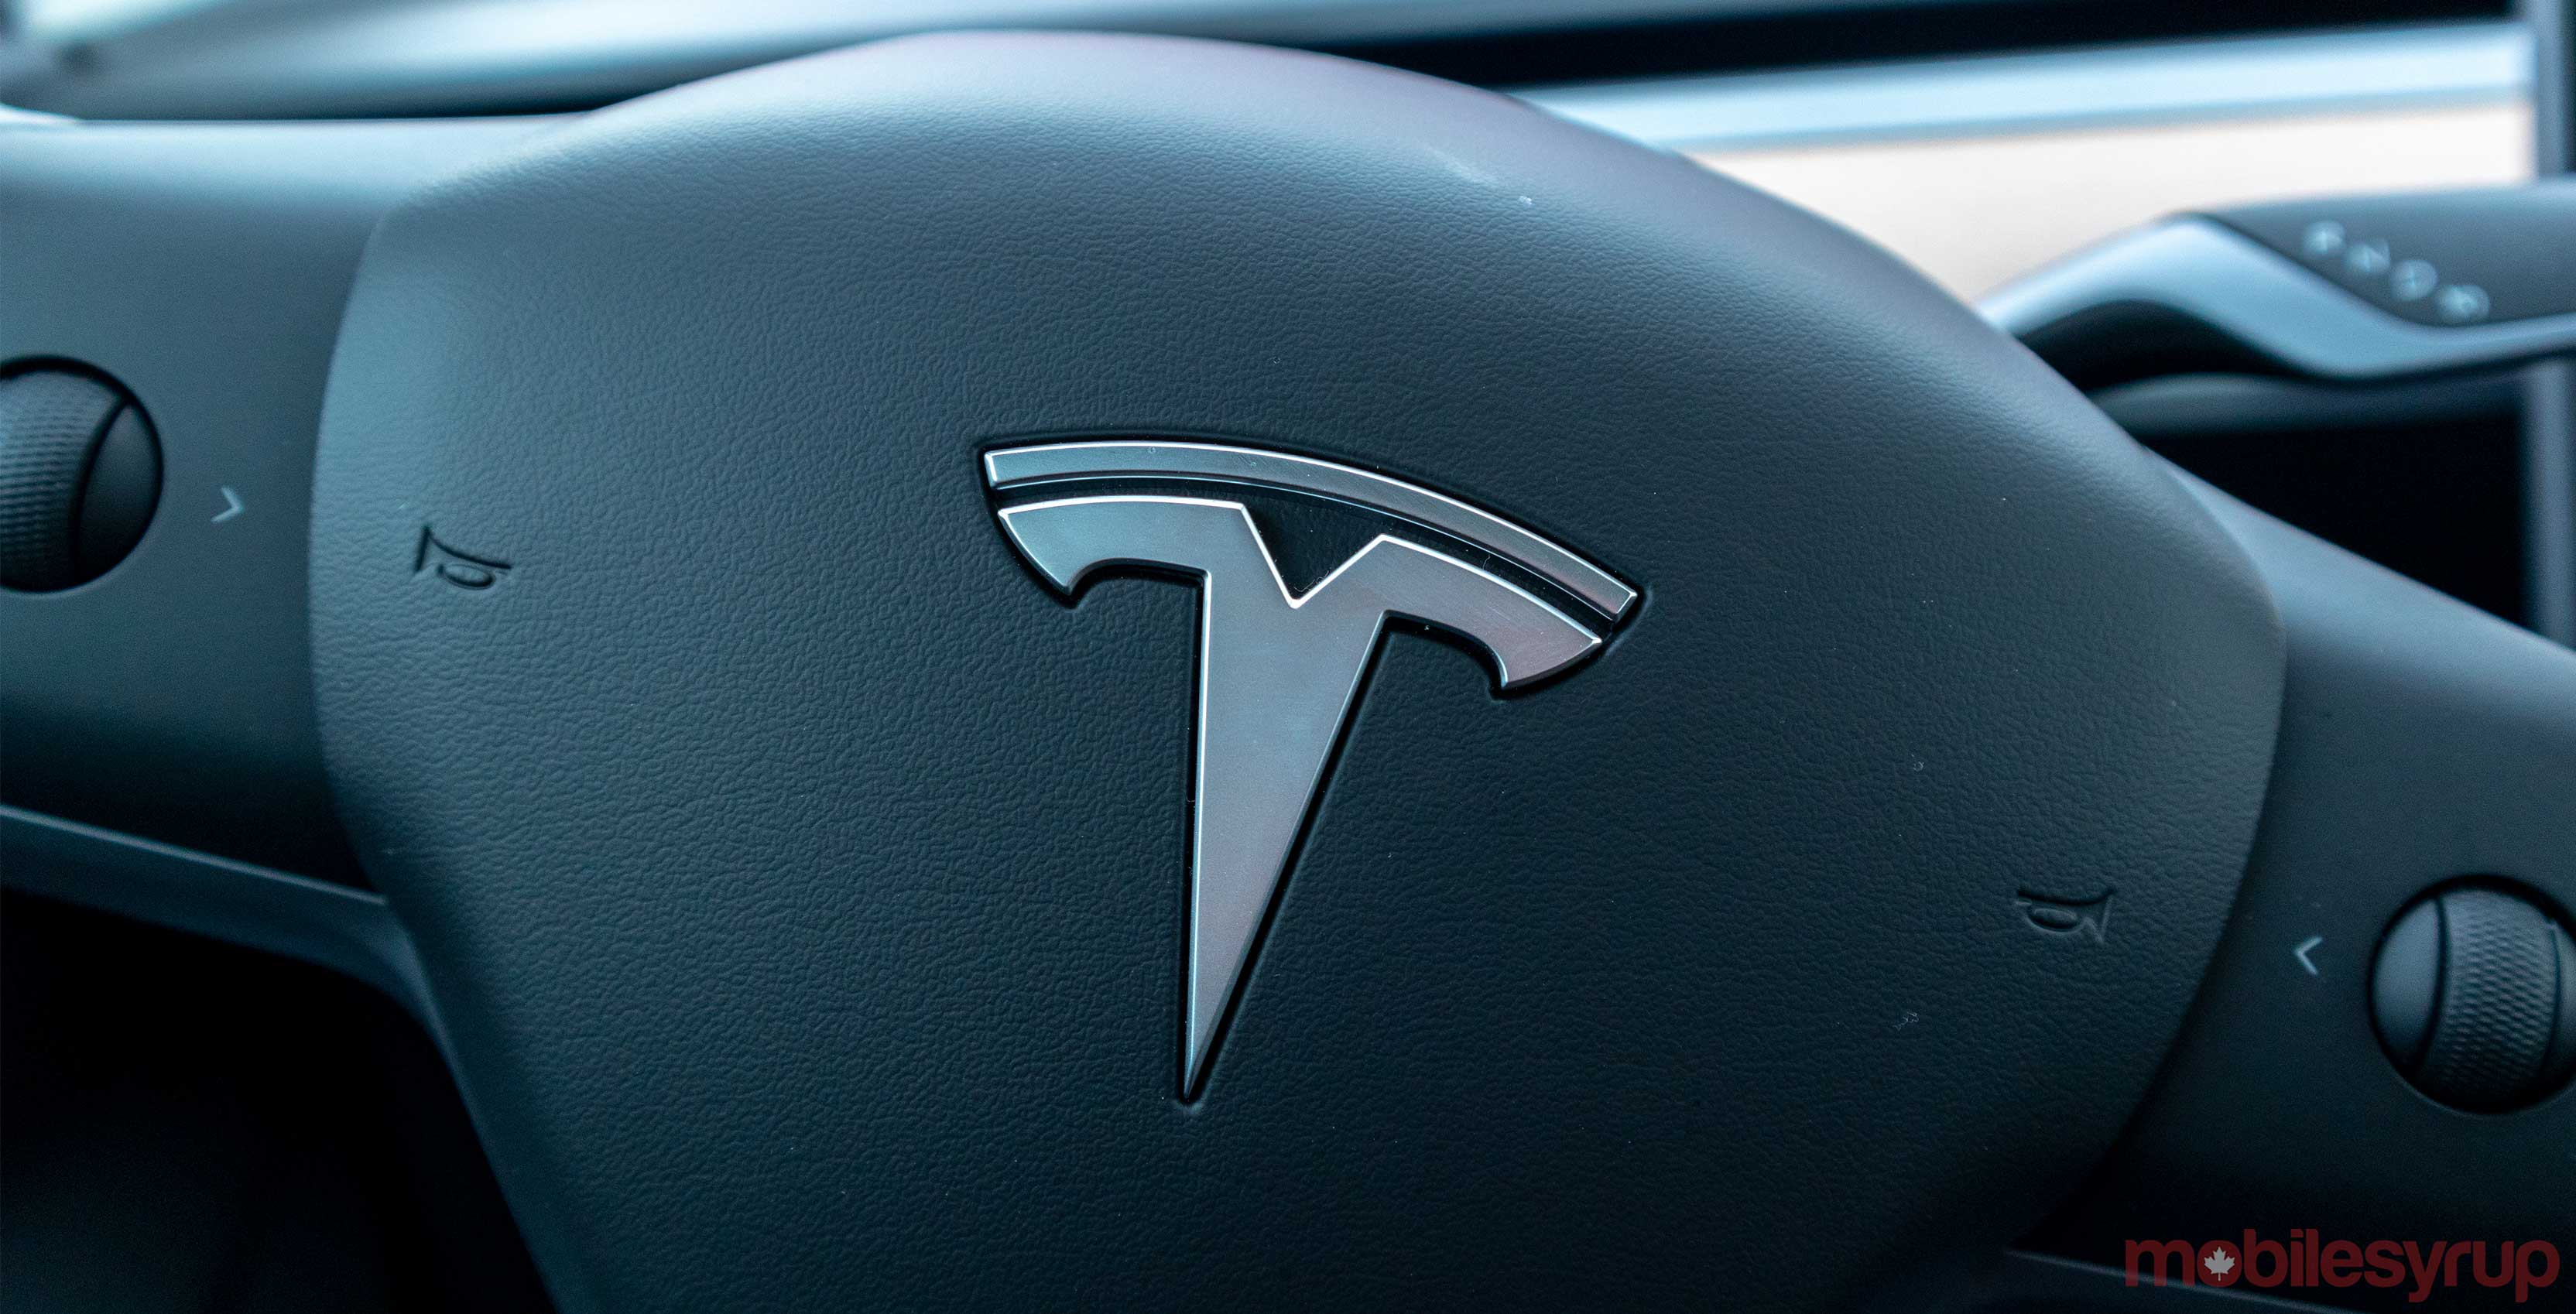 Tesla demonstrated the regime for dogs in cars